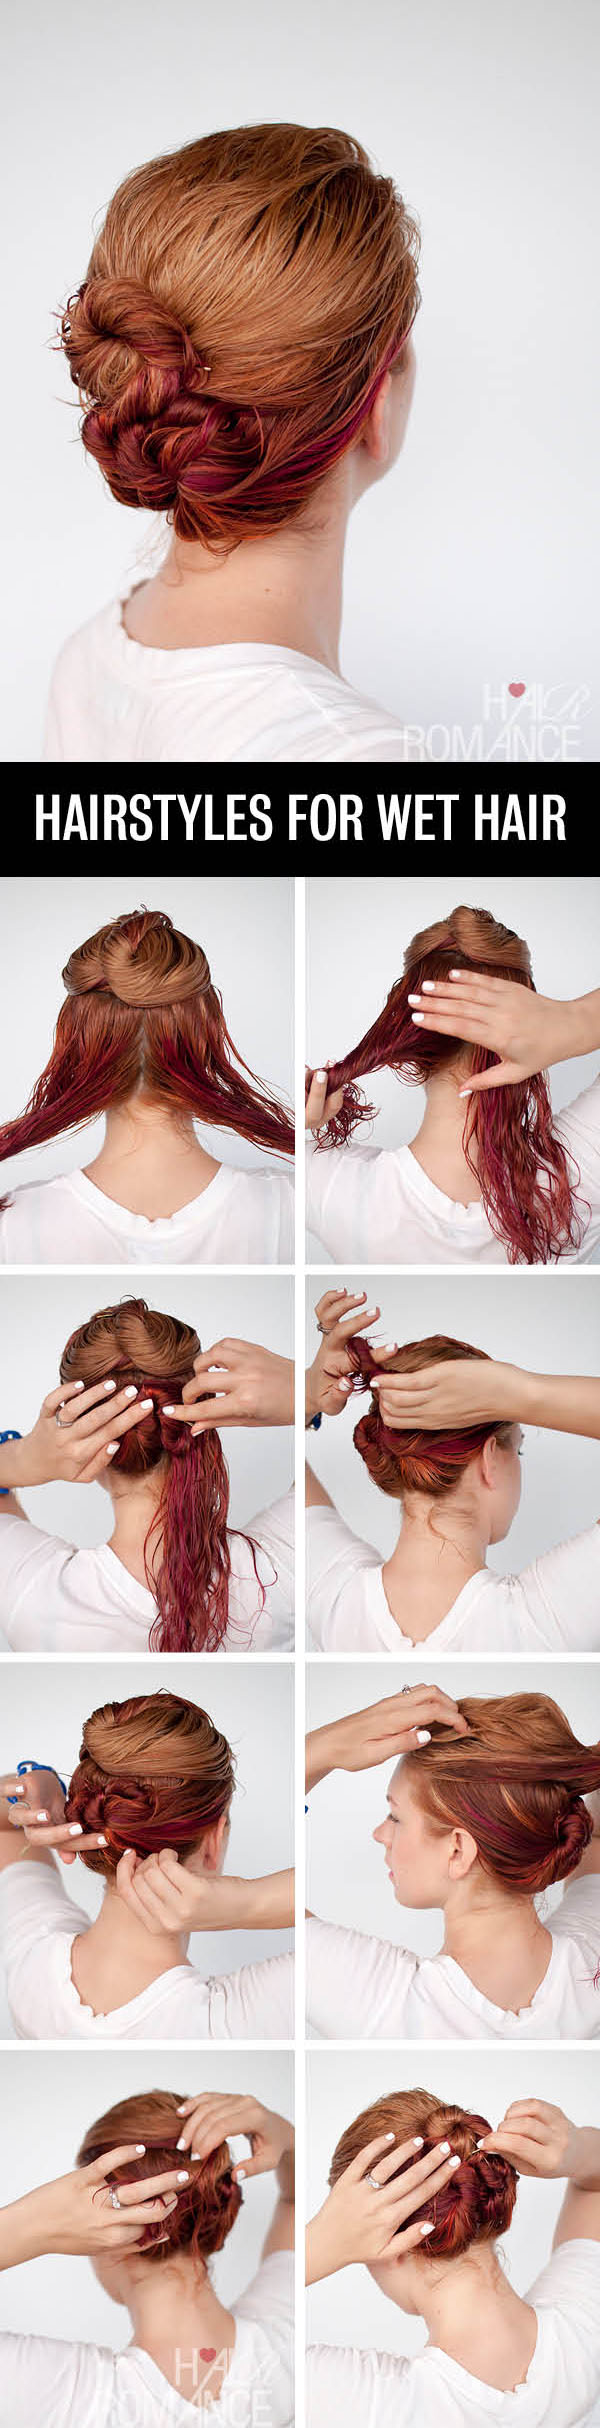 Hair Romance - Hairstyle tutorials for wet hair - the loose triple bun